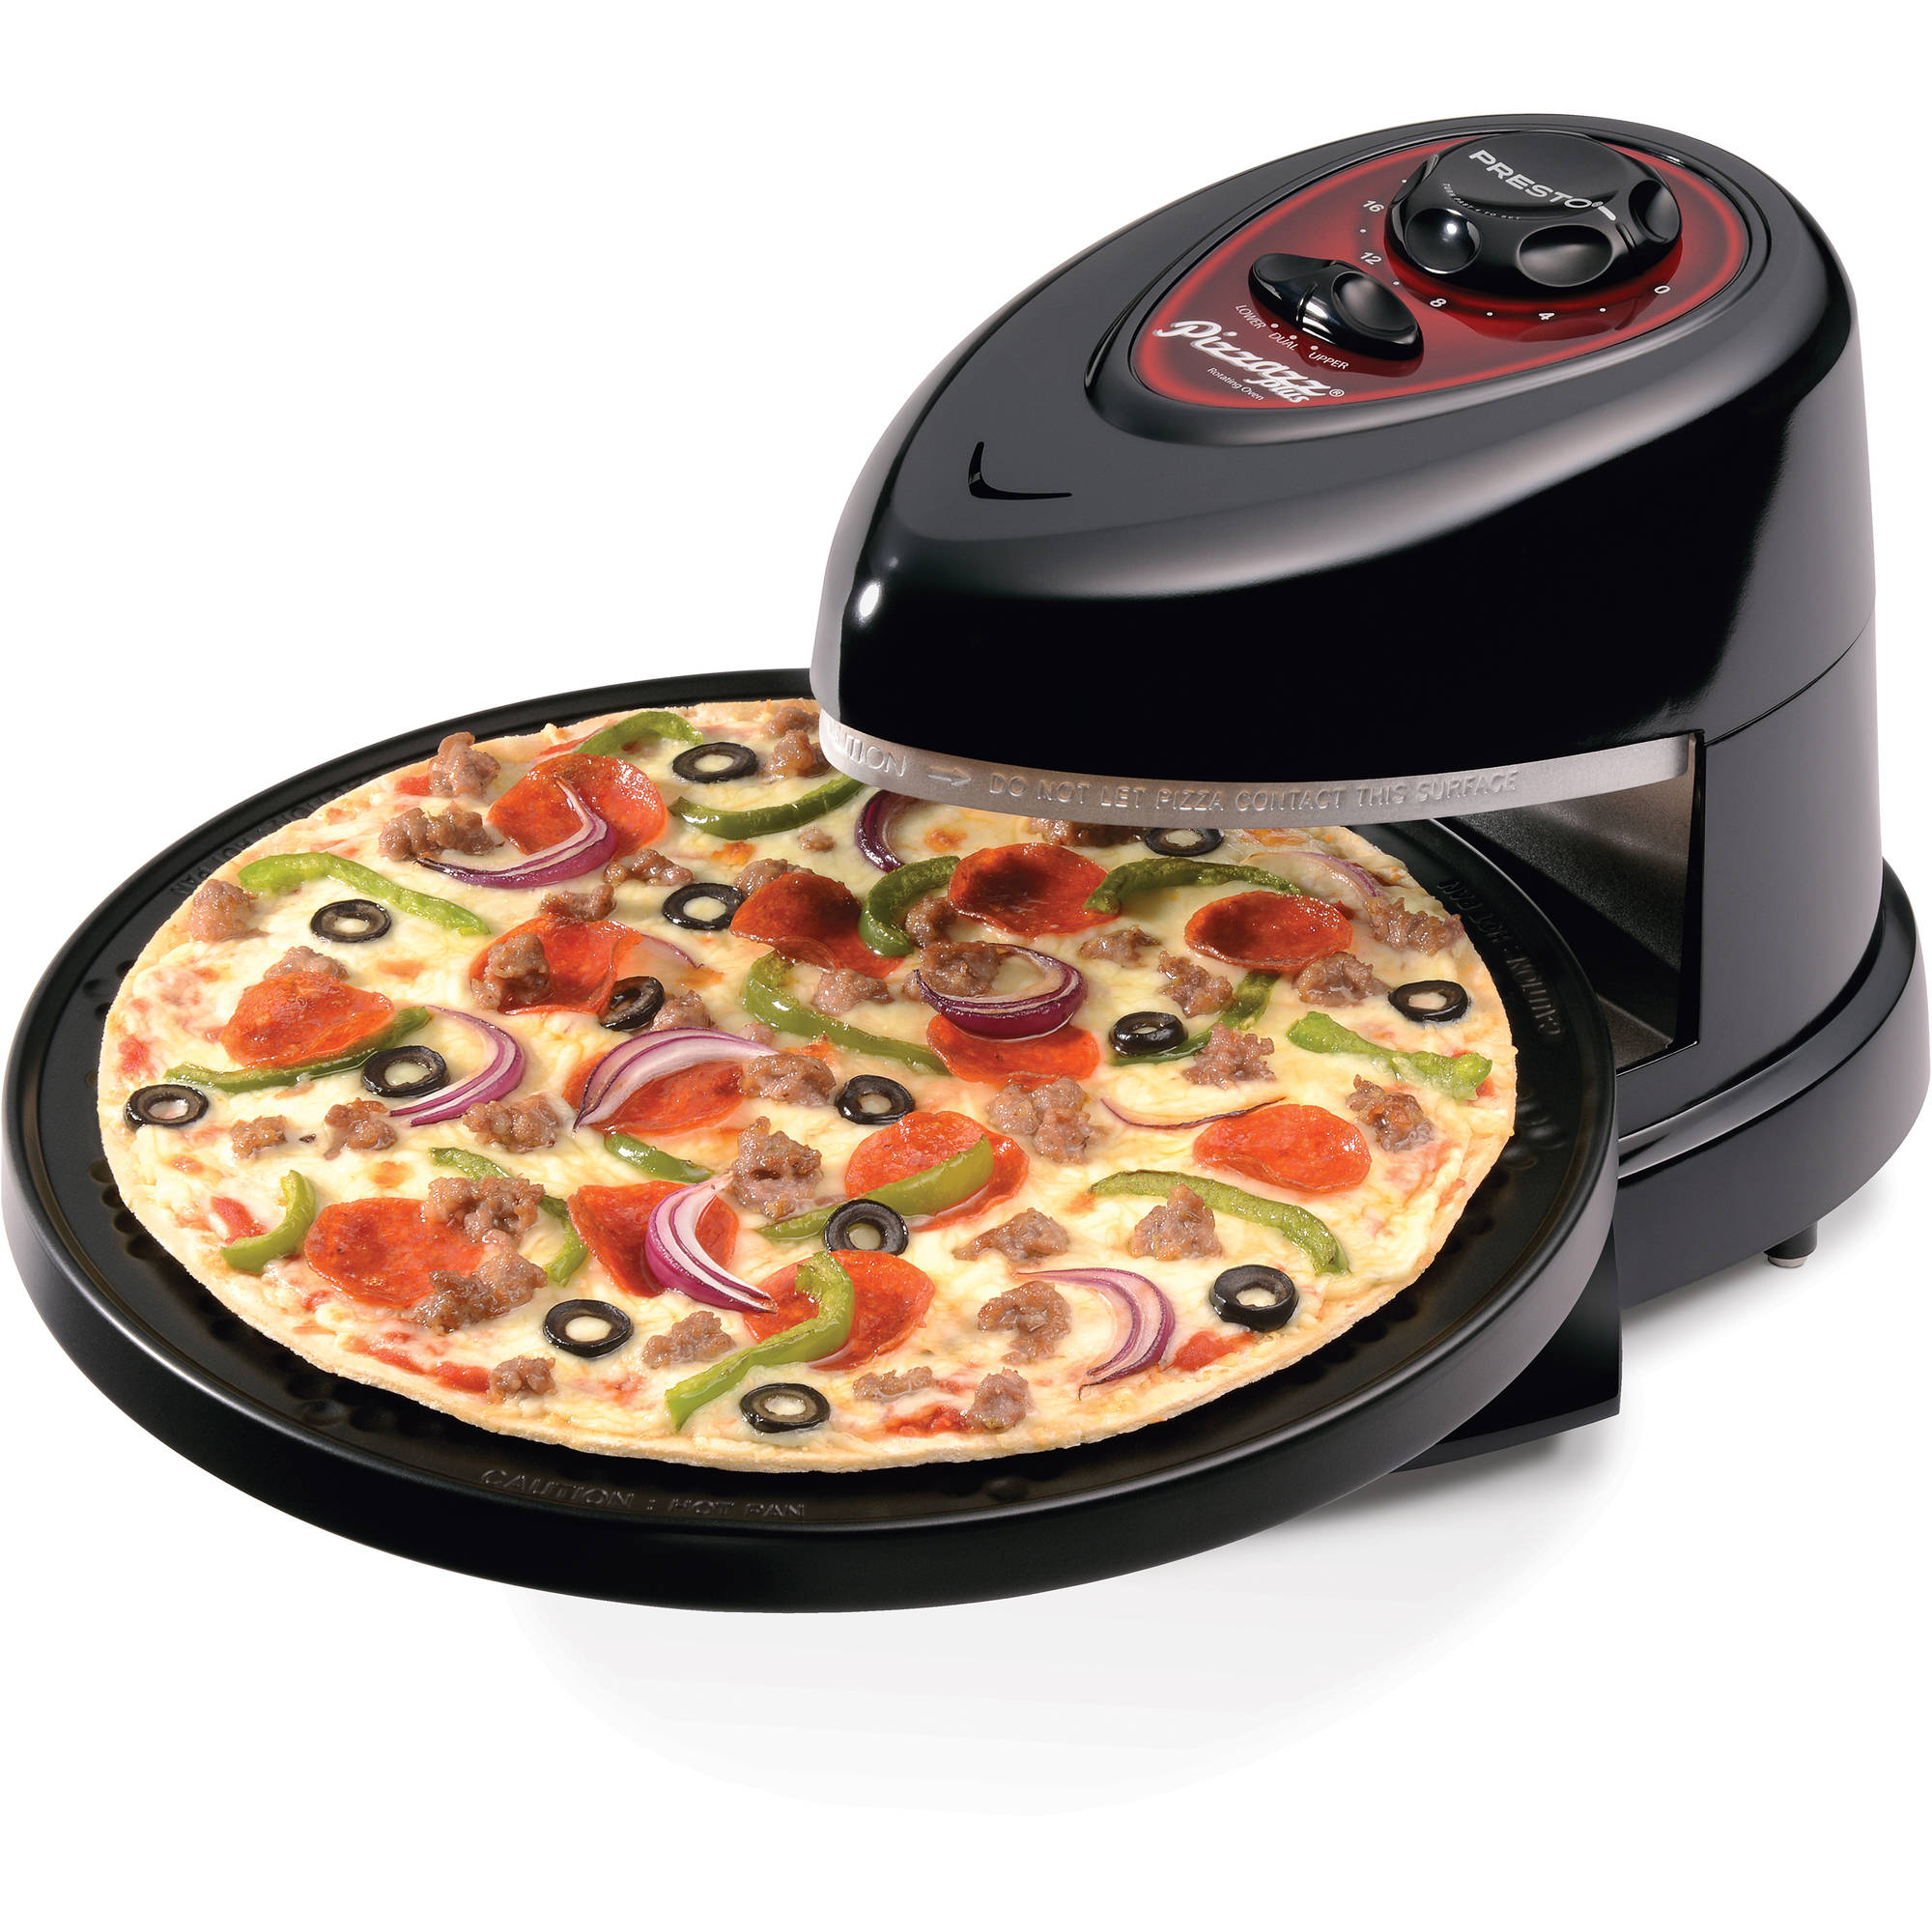 Uncategorized Hot Dog Cookers Specialty Kitchen Appliances specialty kitchen appliances walmart com presto pizzazz plus rotating oven